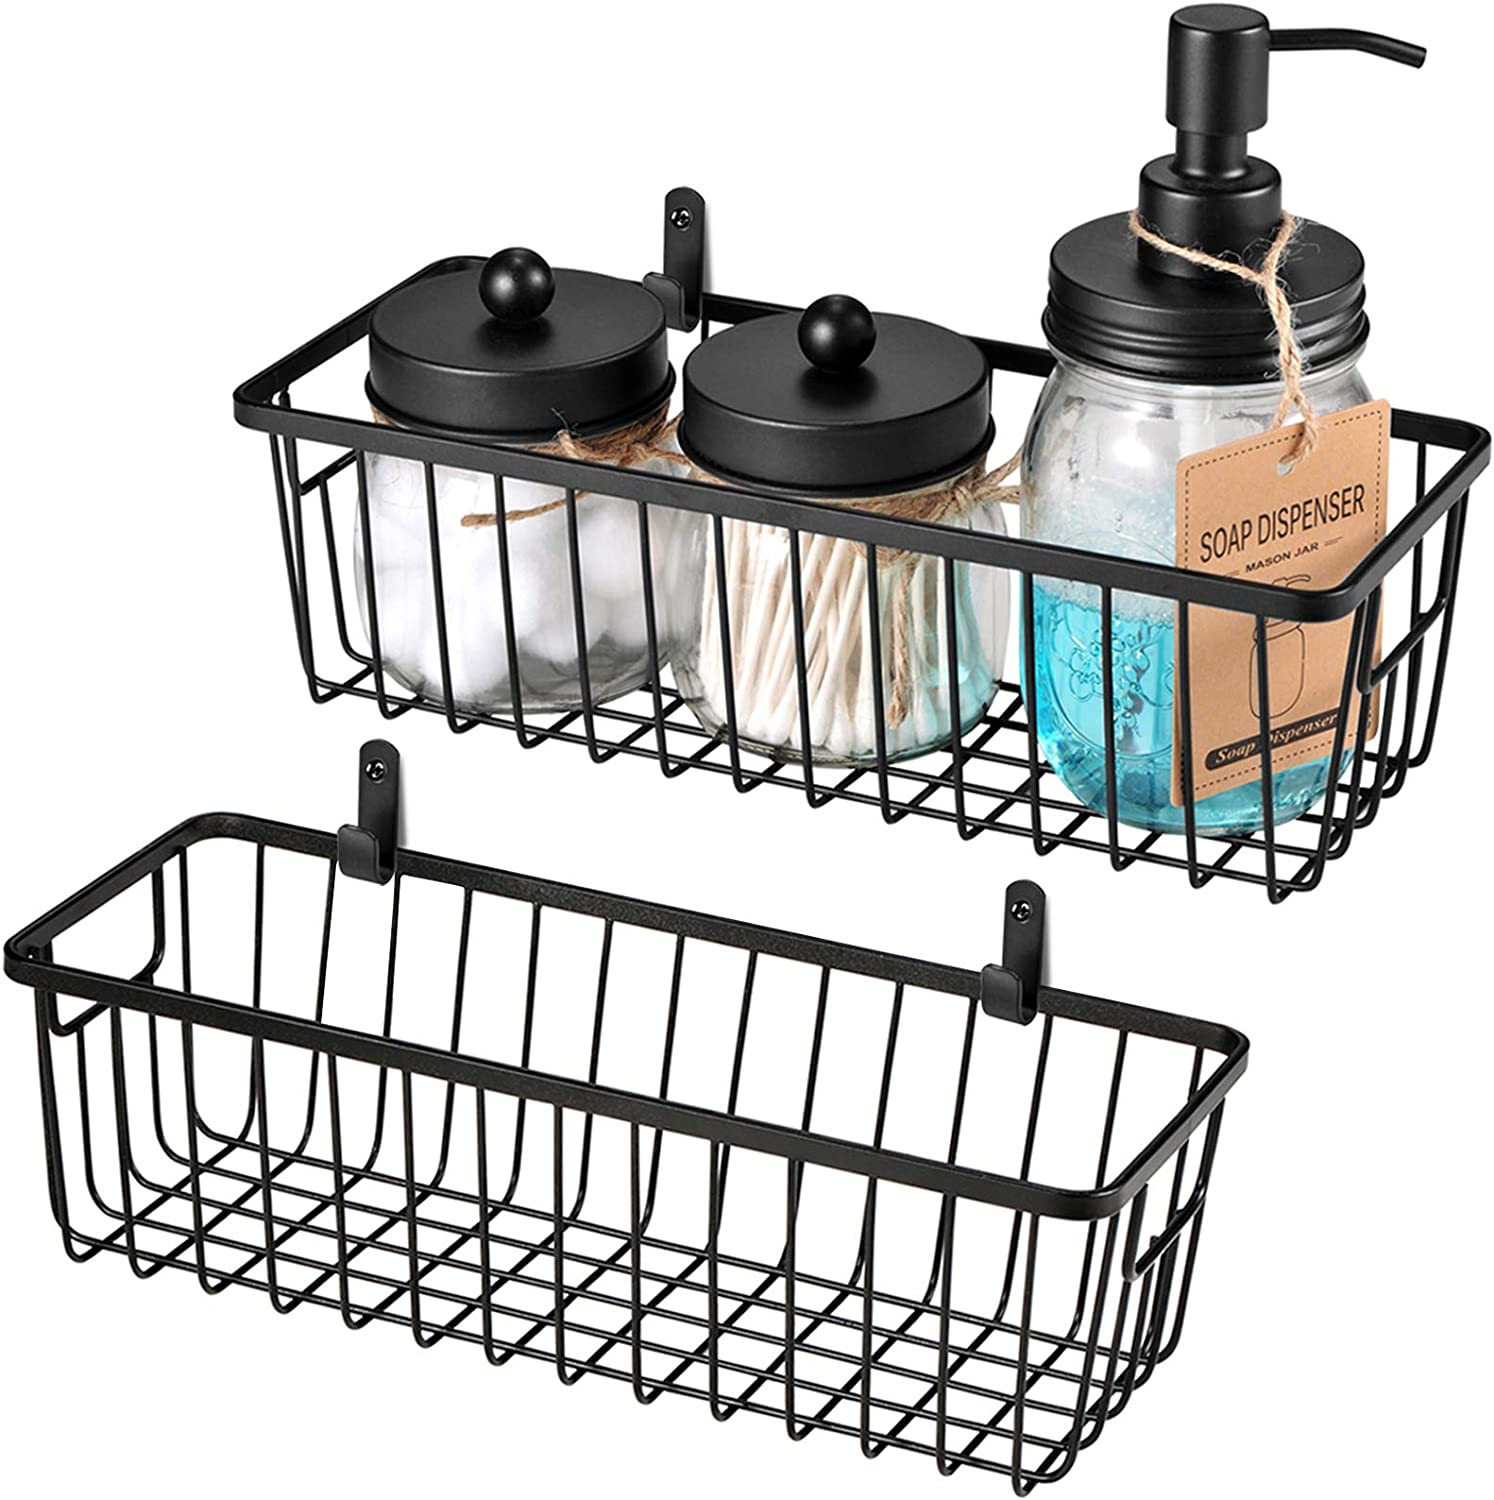 Farmhouse Decor Metal Wire Bathroom Storage Organizer Basket Bins - for Cabinets, Shelves, Closets, Vanity Countertops, Under Sinks, Pantry, Laundry Room, Garage - Small, 2 Pack (Black)